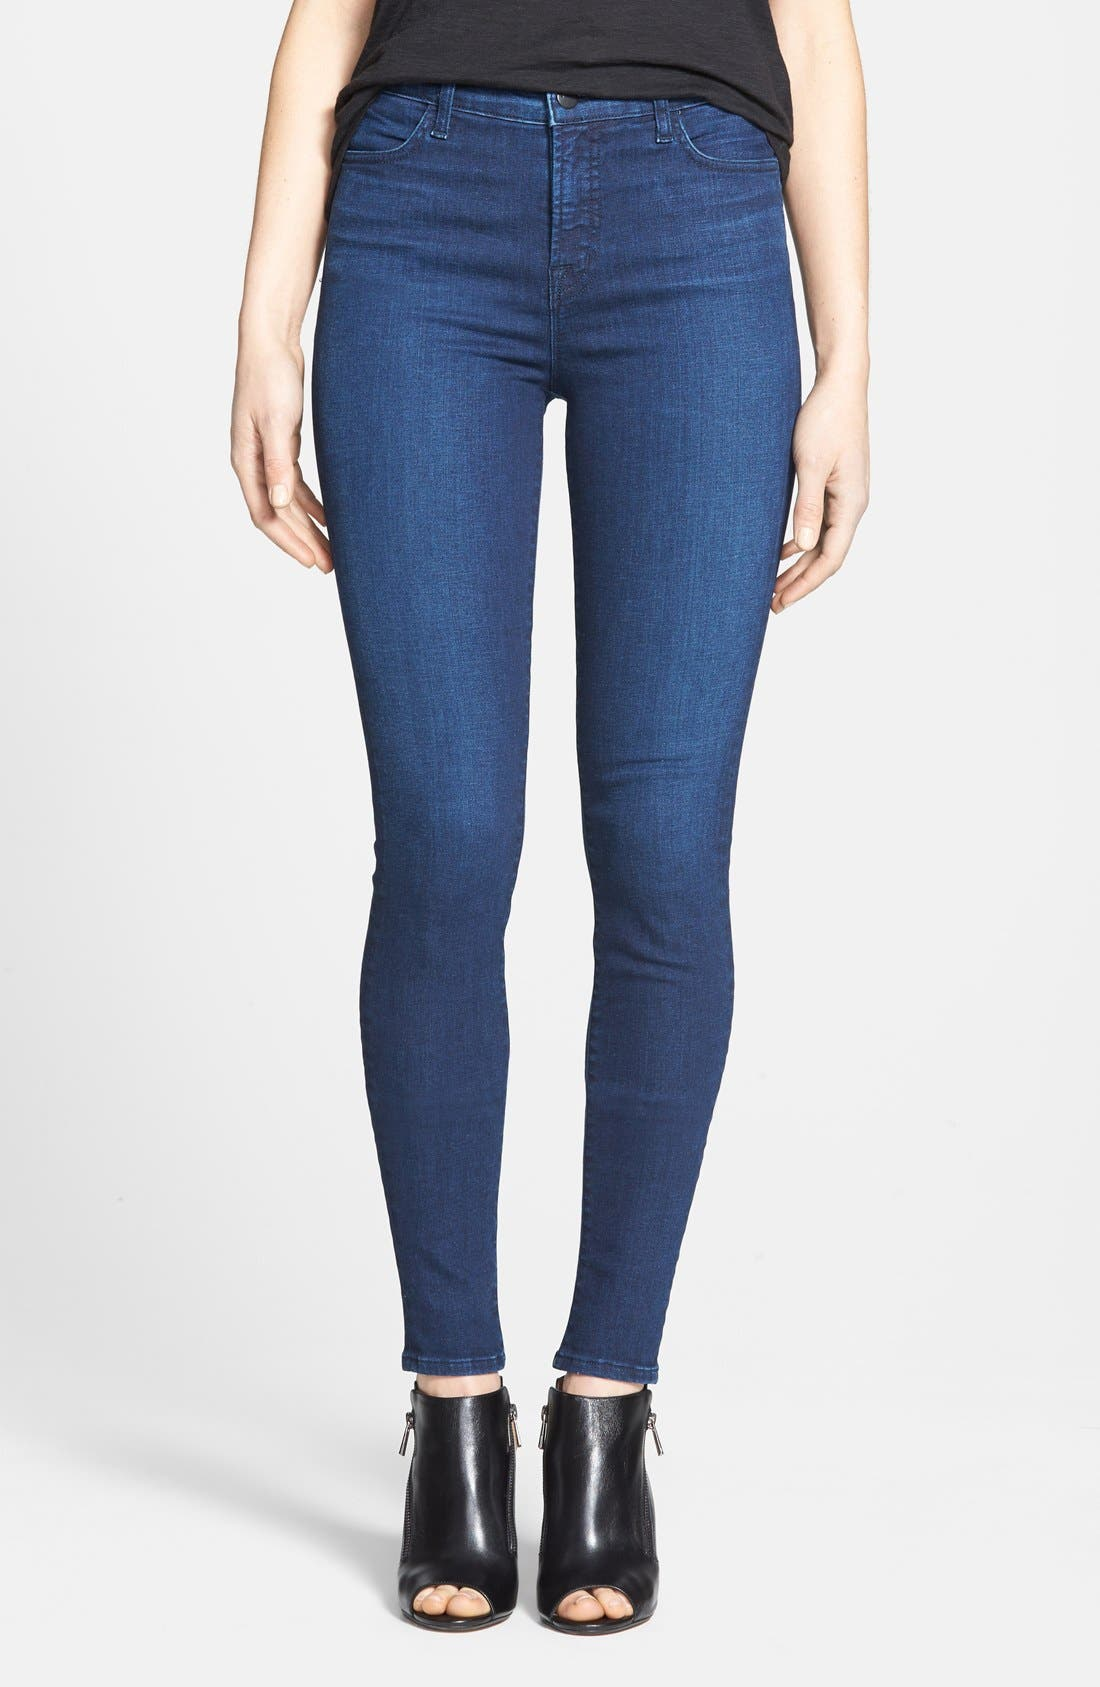 J BRAND 'Maria' High Rise Skinny Jeans, Main, color, 400